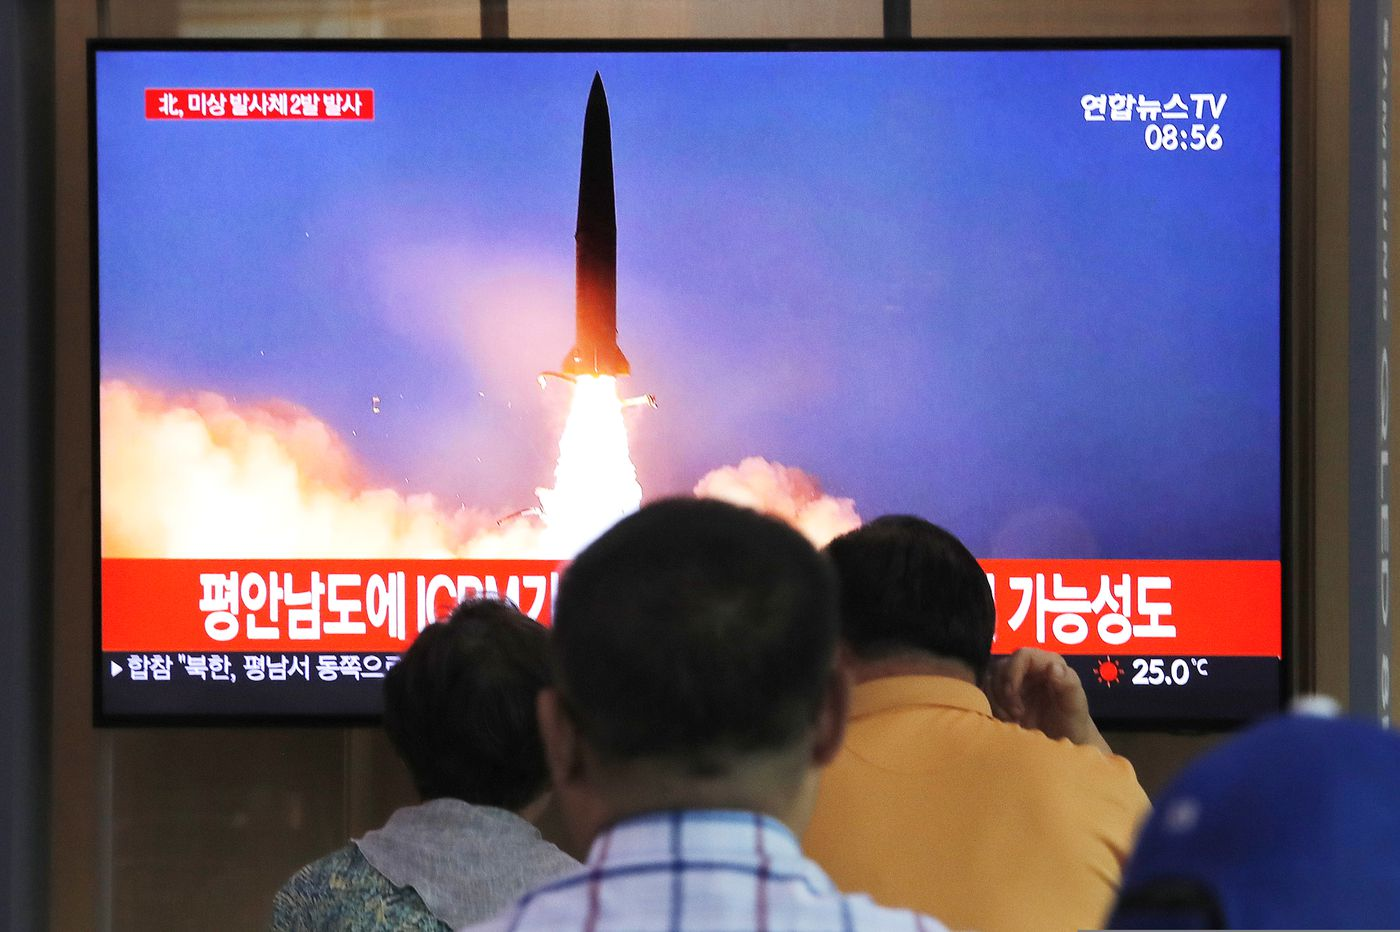 North Korea fires 2 projectiles after offering talks with U.S.